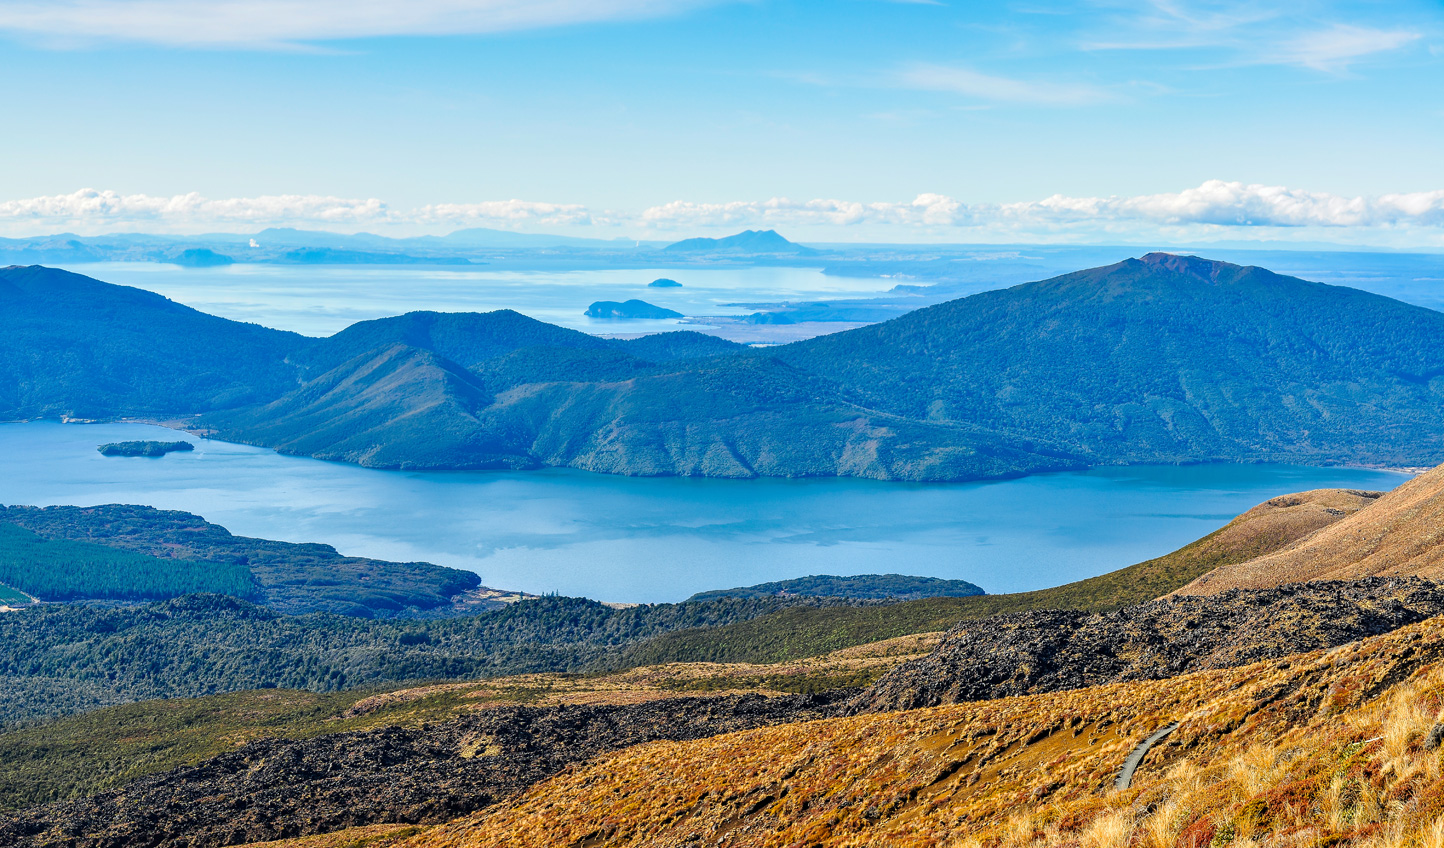 Head out of the city into the natural beauty of Taupo